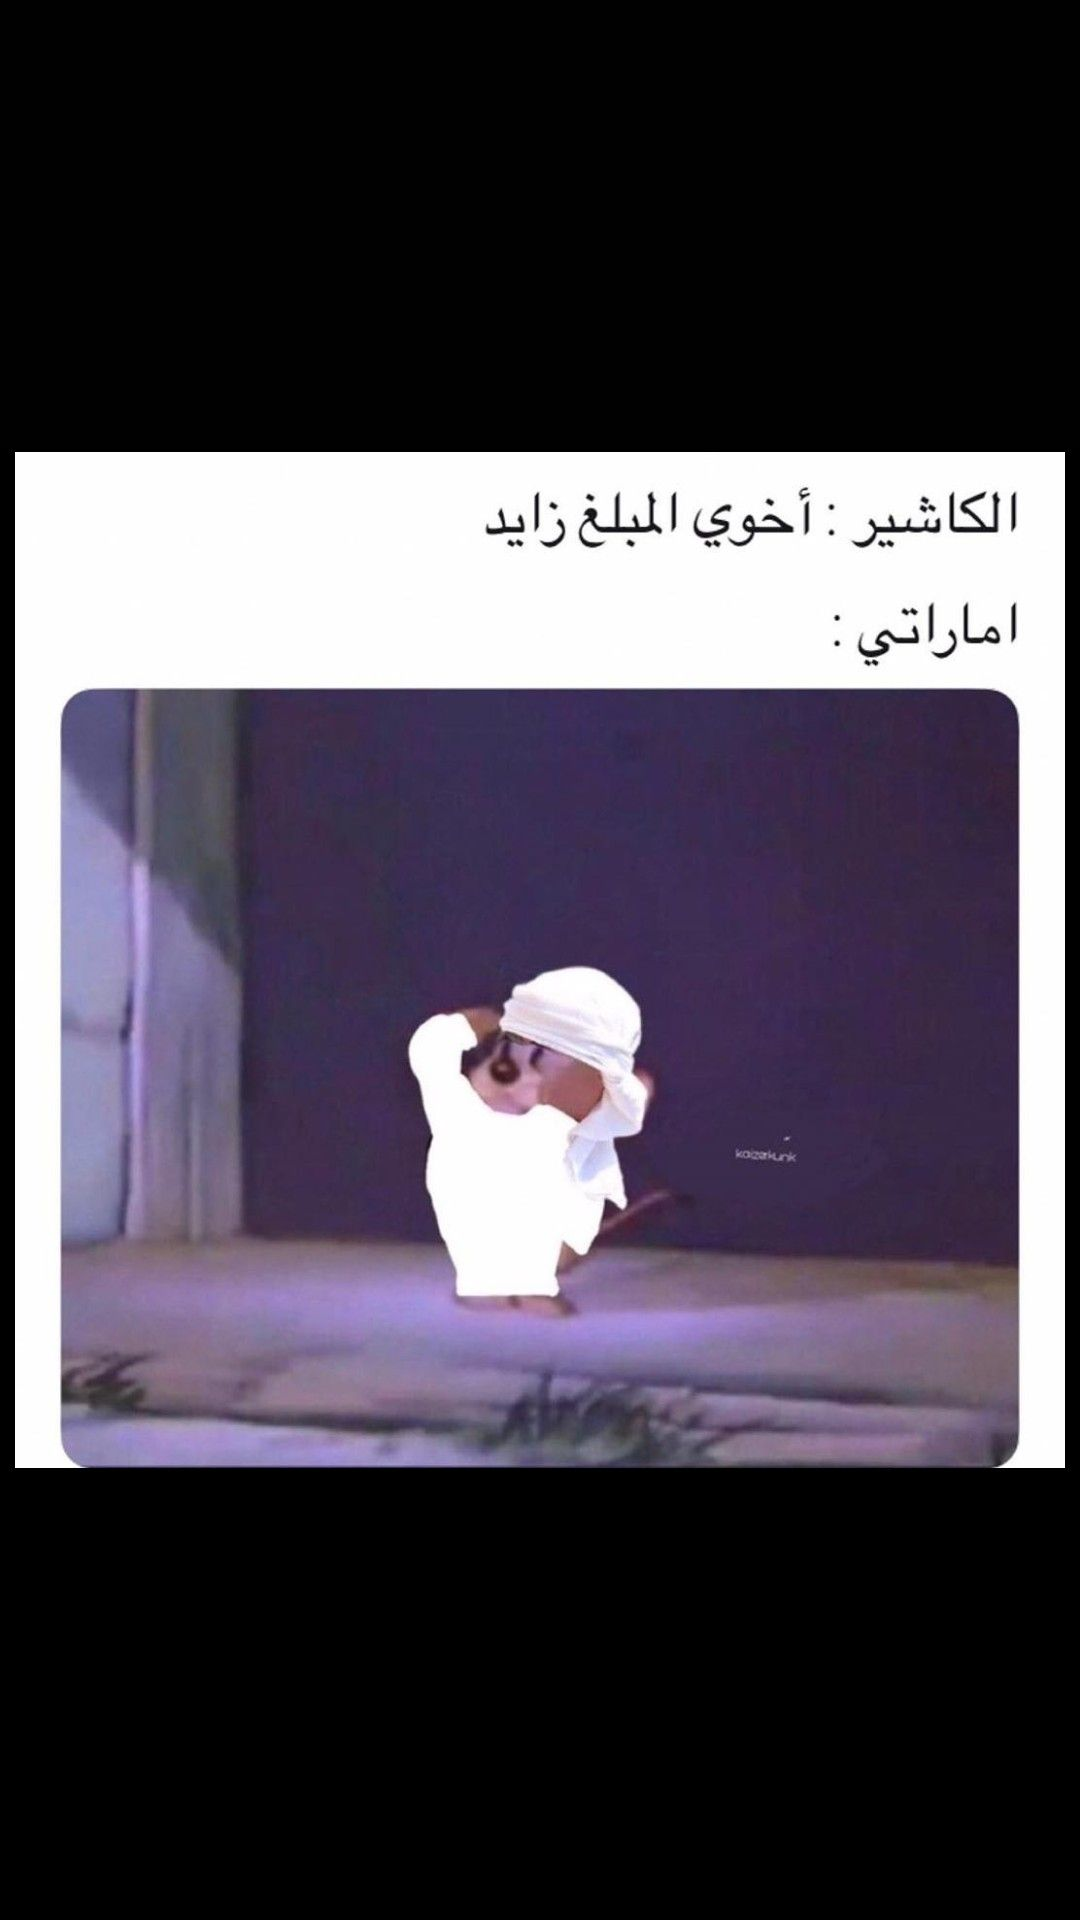 Pin By Ghalya Alhmoudi On استهبال Funny Photo Memes Fun Quotes Funny Funny Arabic Quotes